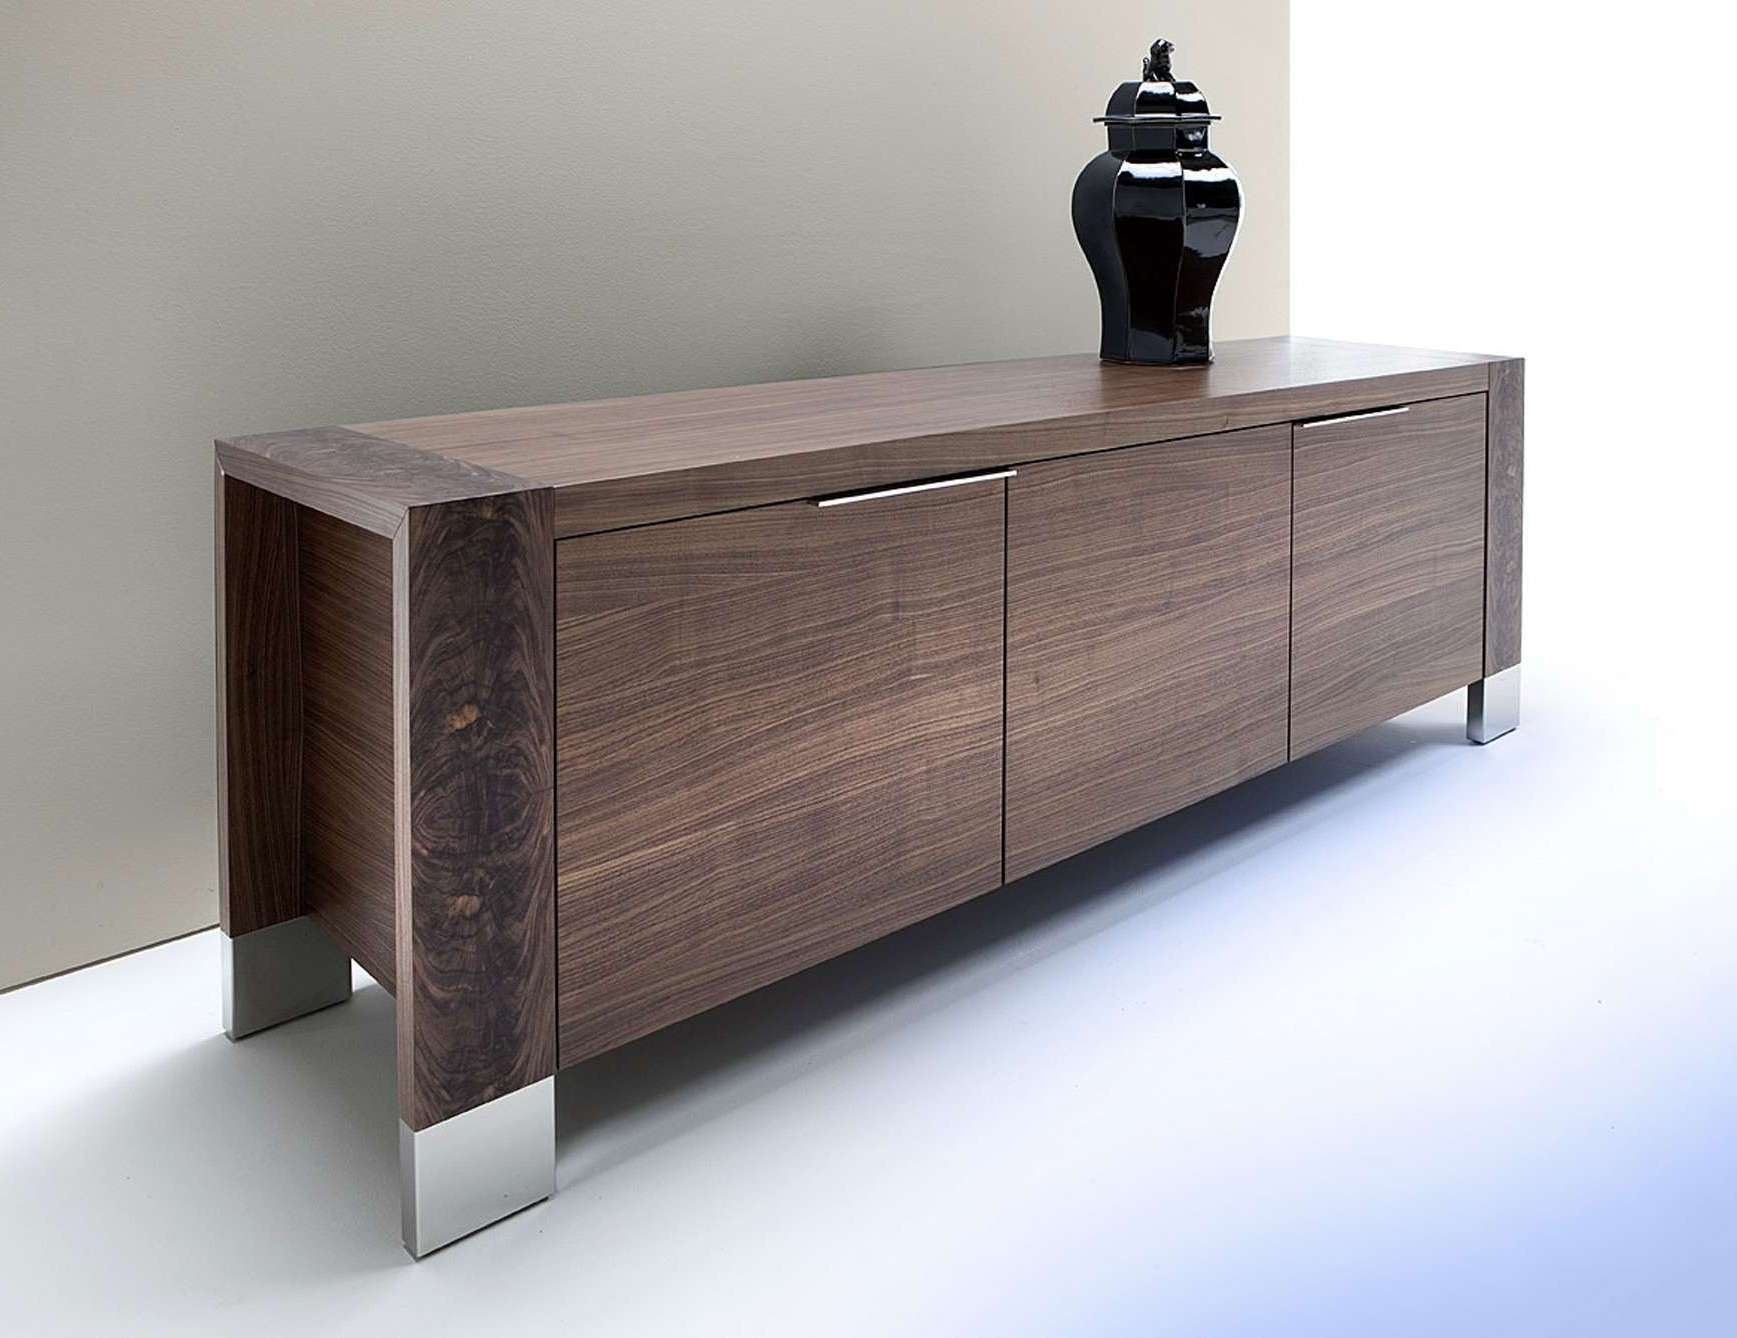 Photos Of Credenza Buffet Sideboards (showing 16 Of 20 Photos) Intended For Credenzas And Sideboards (View 8 of 20)